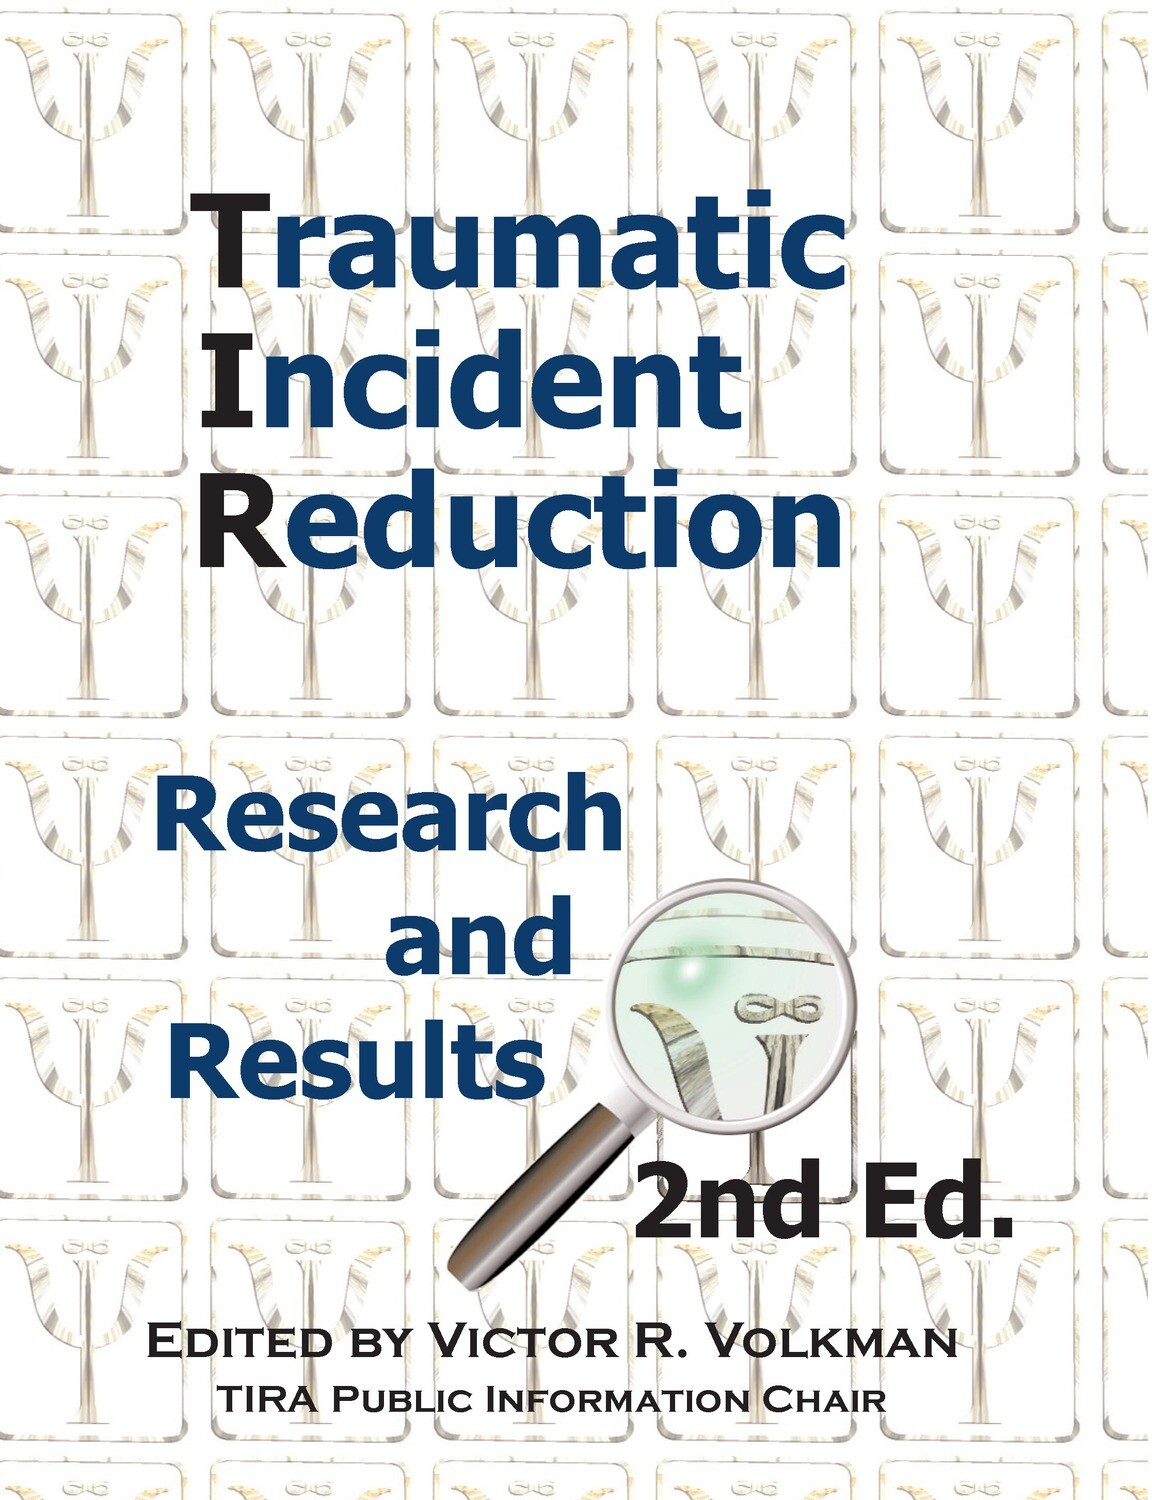 Traumatic Incident Reduction